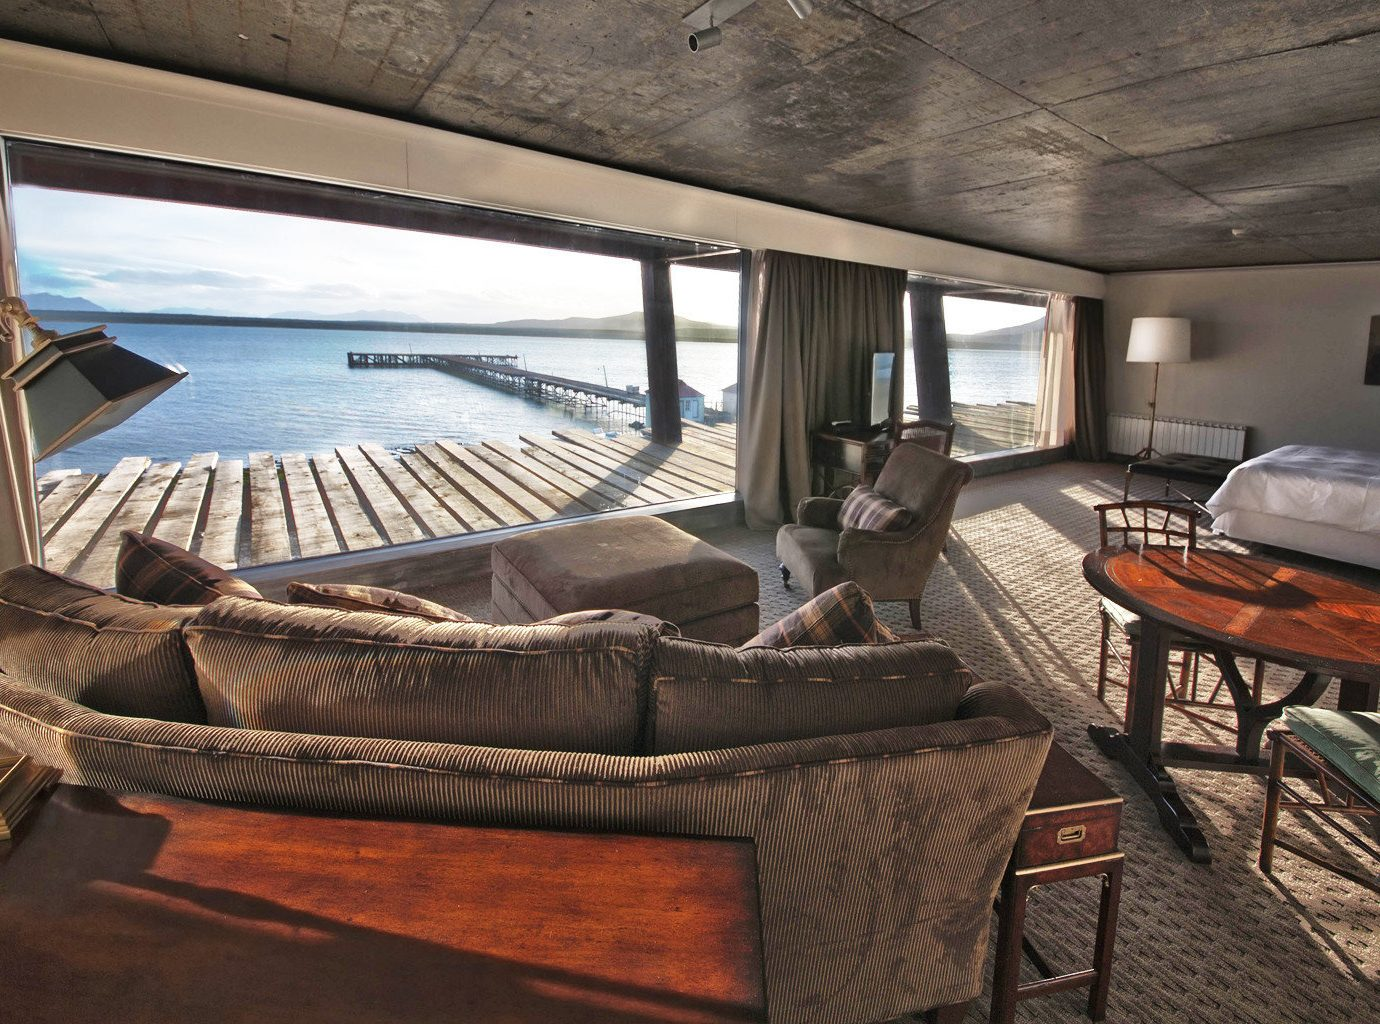 Beachfront Bedroom Deck Hotels Luxury Patio Scenic views Suite Waterfront property vehicle Boat passenger ship yacht home cottage living room luxury yacht ship Villa watercraft